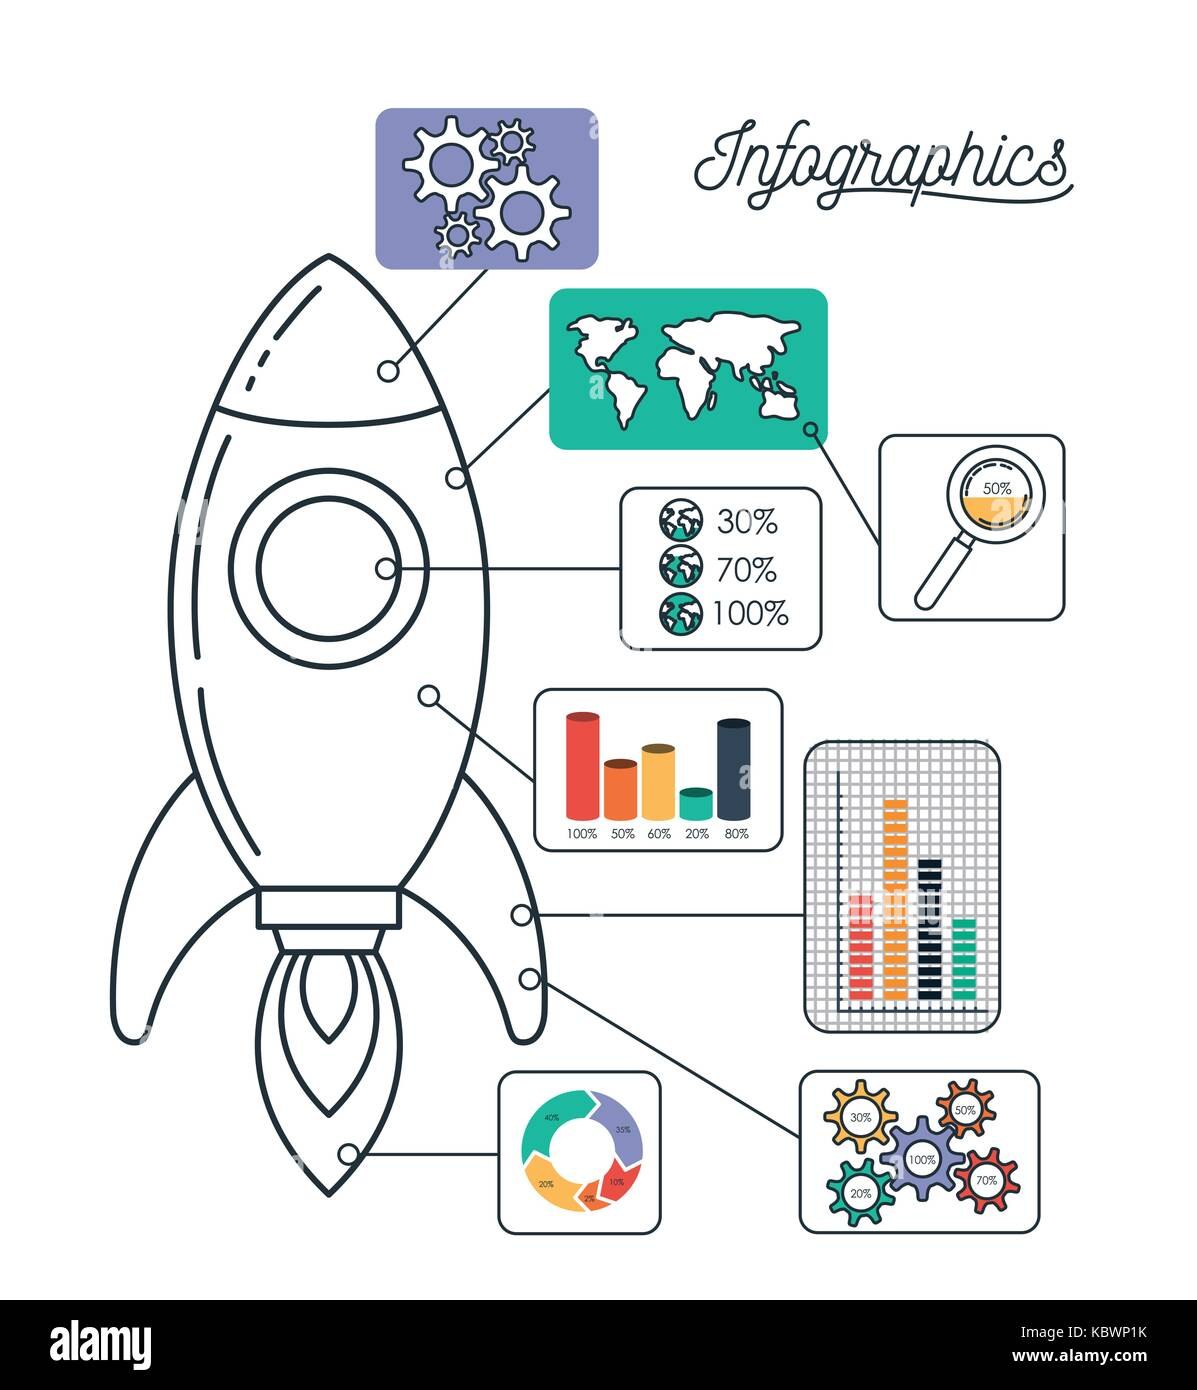 infographics and statistics with spacecraft - Stock Image